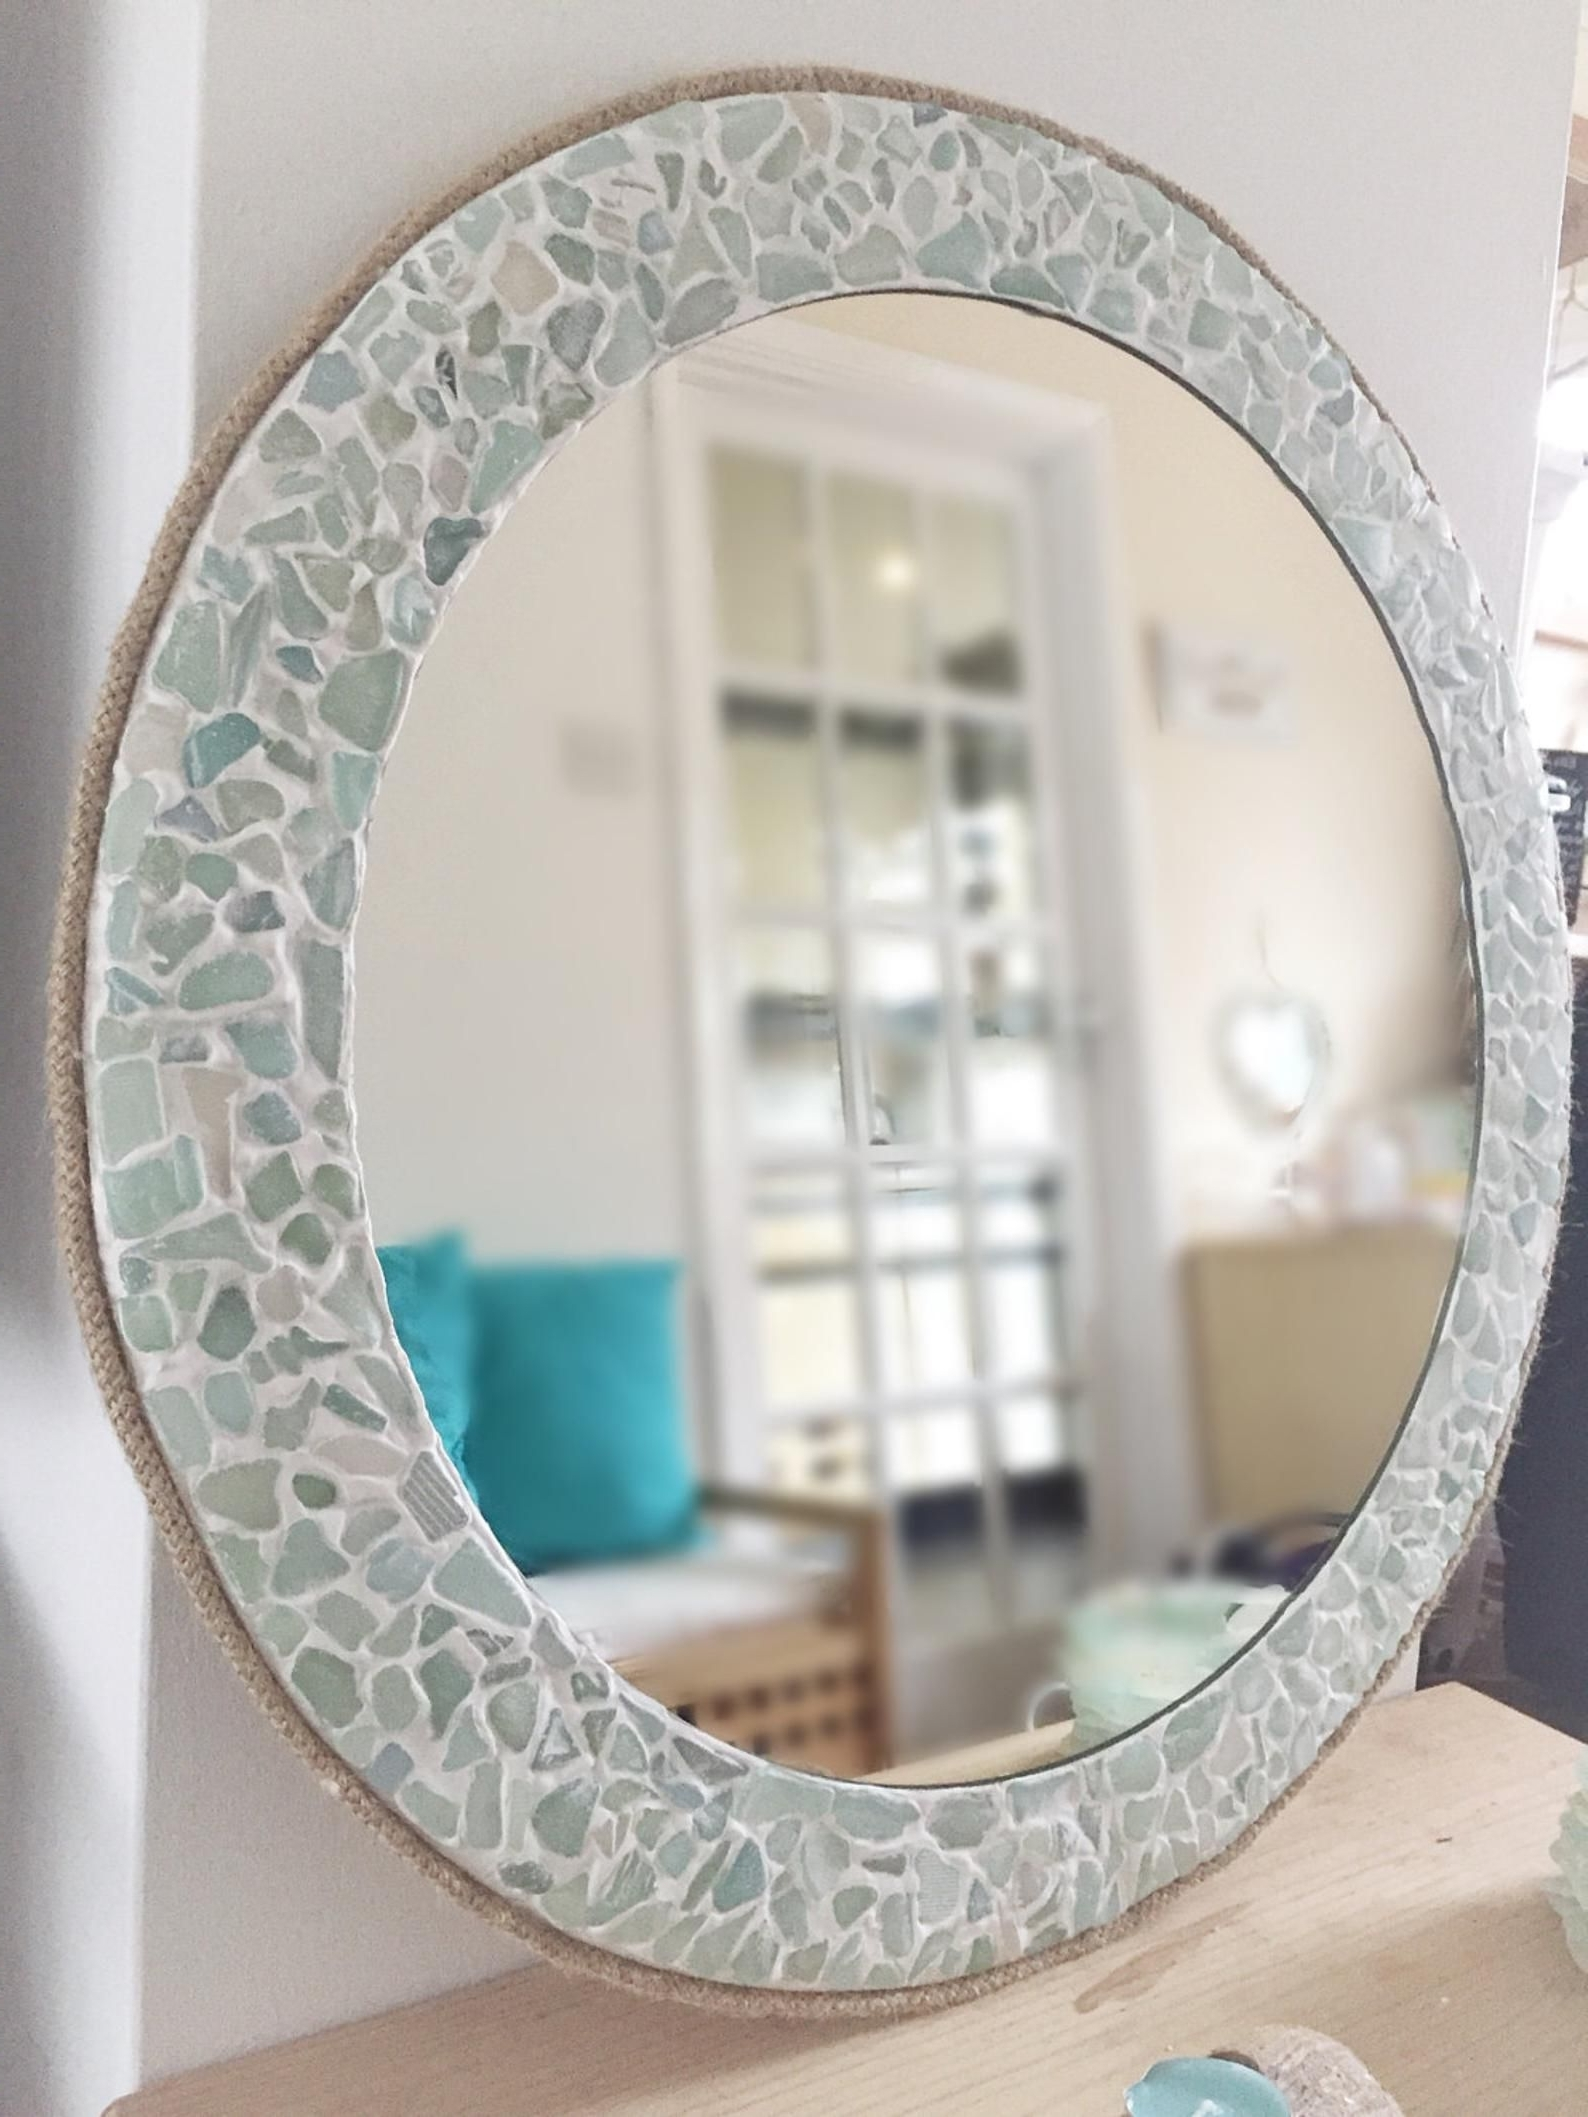 Large Round Sea Glass Mirror Isle Of Wight Beach Home Decor Nautical Bathroom Mirrors